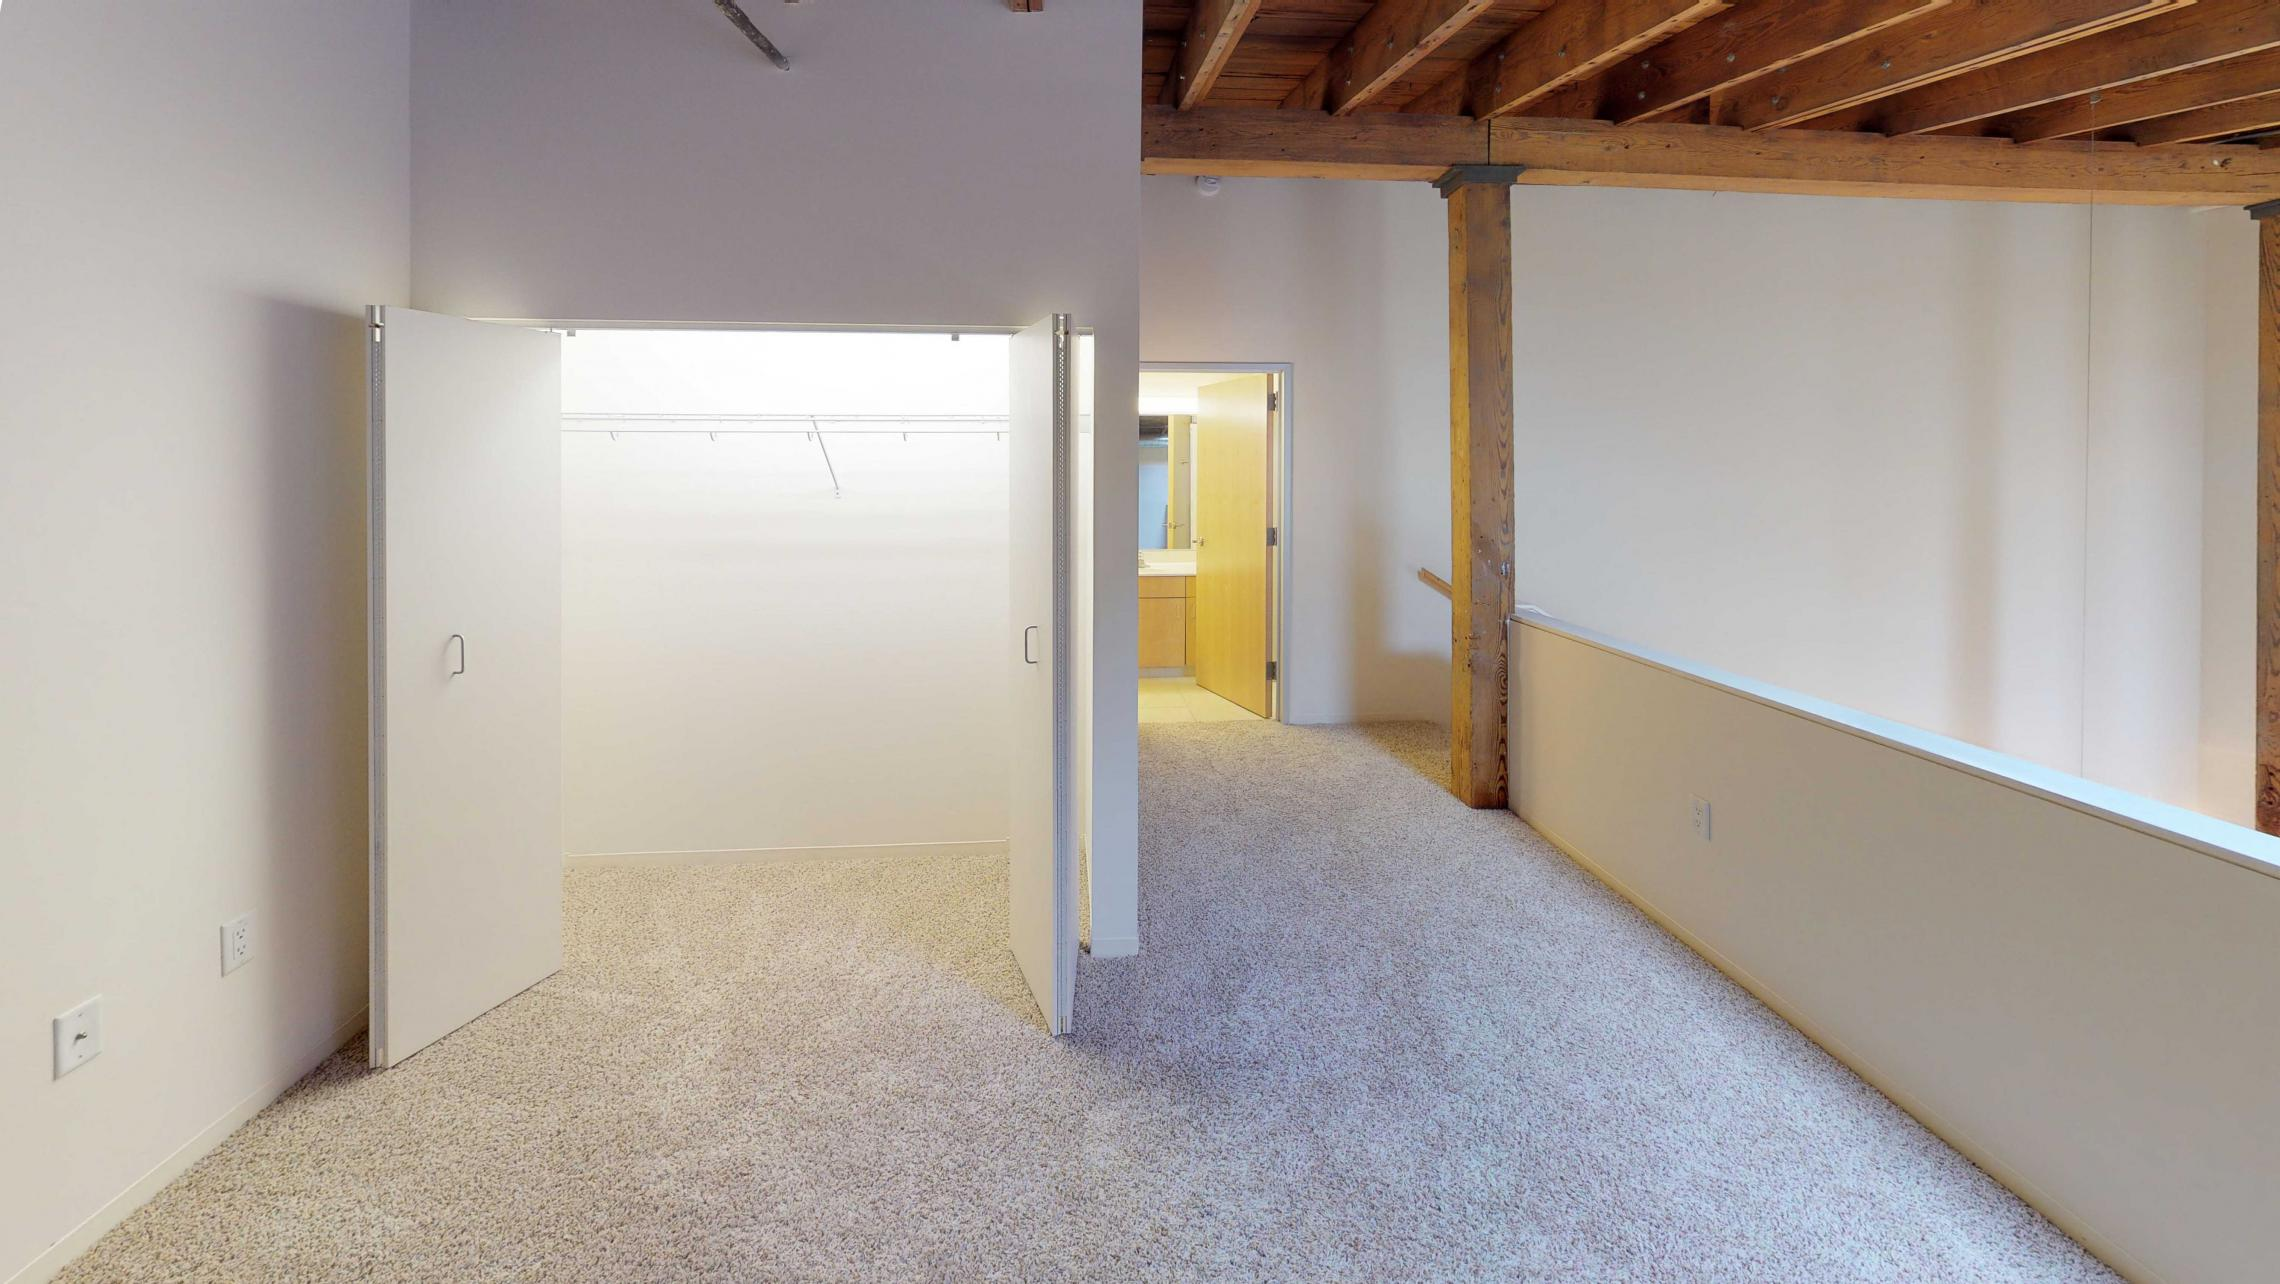 Tobacco-Lofts-Apartment-E306-Lofted-Historic-Two-Bedroom-Downtown-Madison-Exposures-Beams-Vaulted